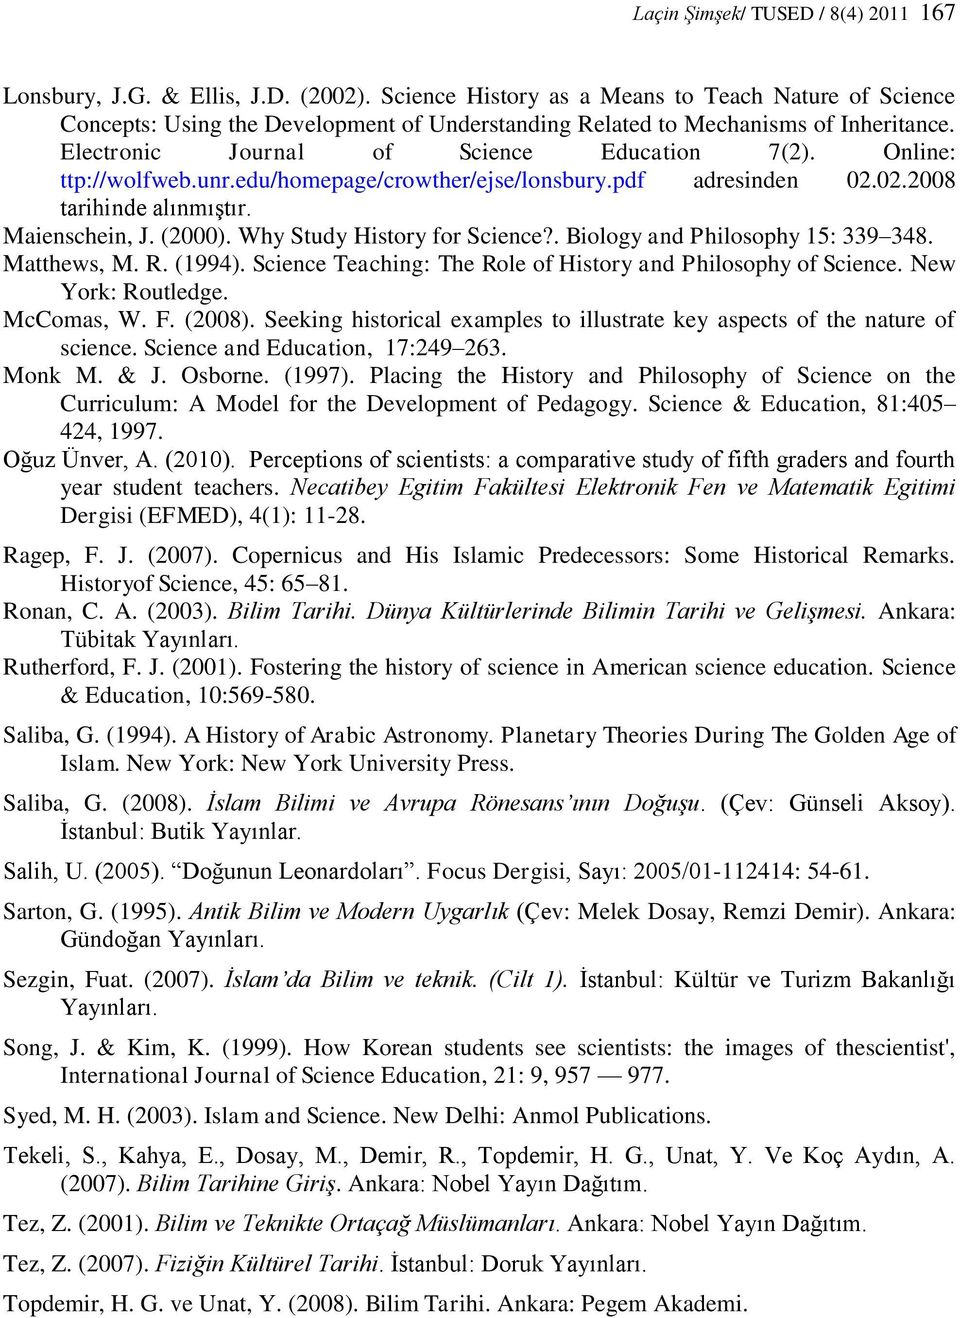 Online: ttp://wolfweb.unr.edu/homepage/crowther/ejse/lonsbury.pdf adresinden 02.02.2008 tarihinde alınmıştır. Maienschein, J. (2000). Why Study History for Science?. Biology and Philosophy 15: 339 348.